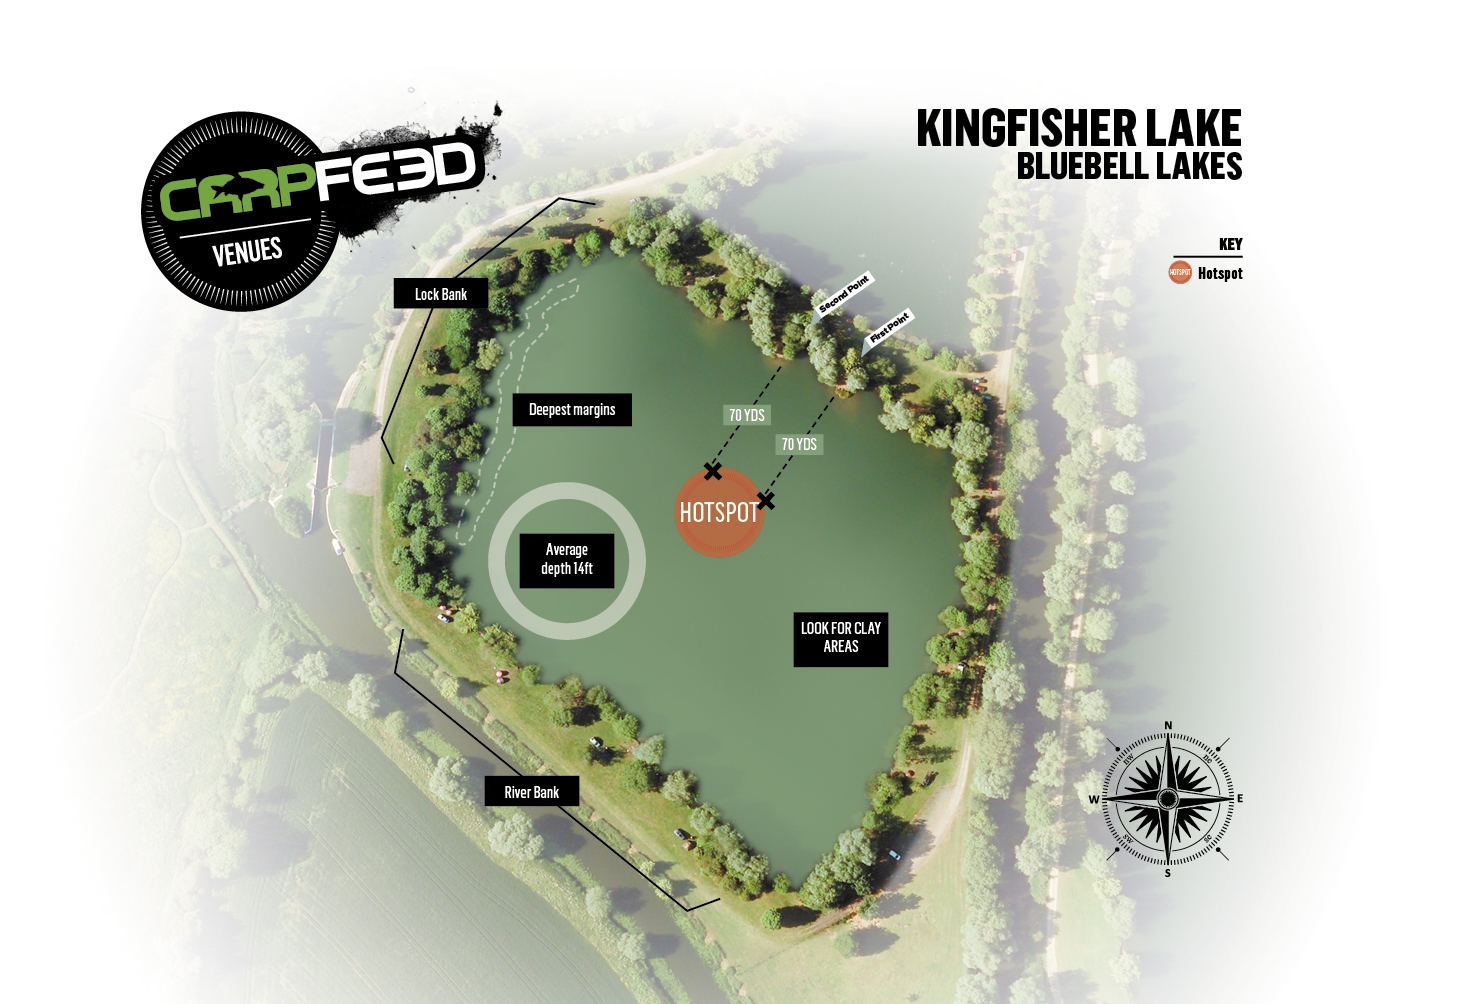 CLICK THE MAP FOR OUR FULL GUIDE TO KINGFISHER